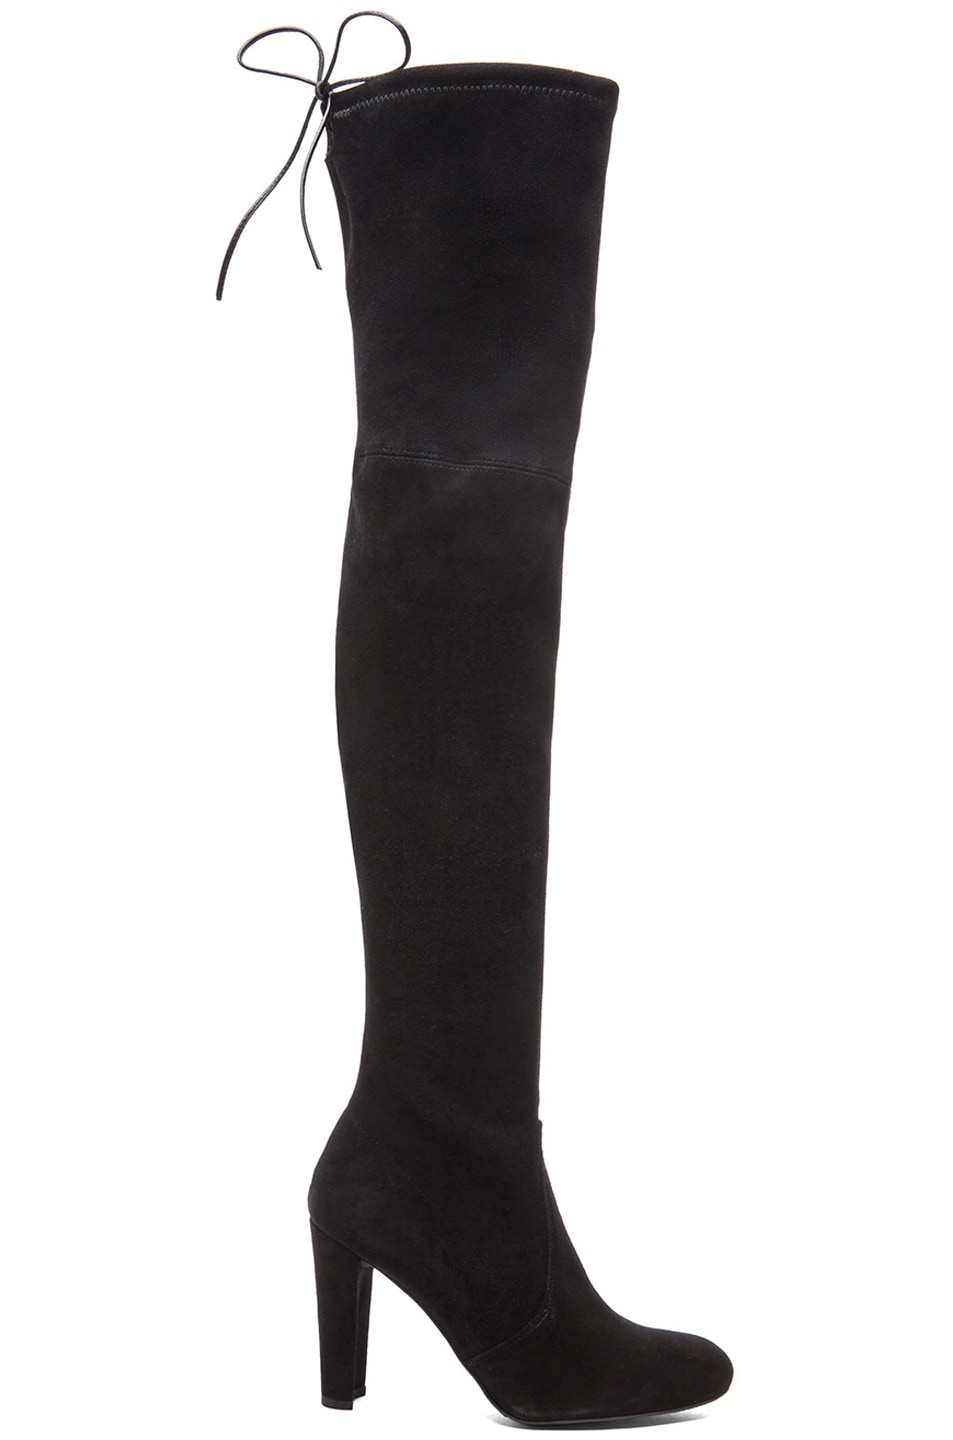 Image 1 of Stuart Weitzman Highland Suede Boots in Black